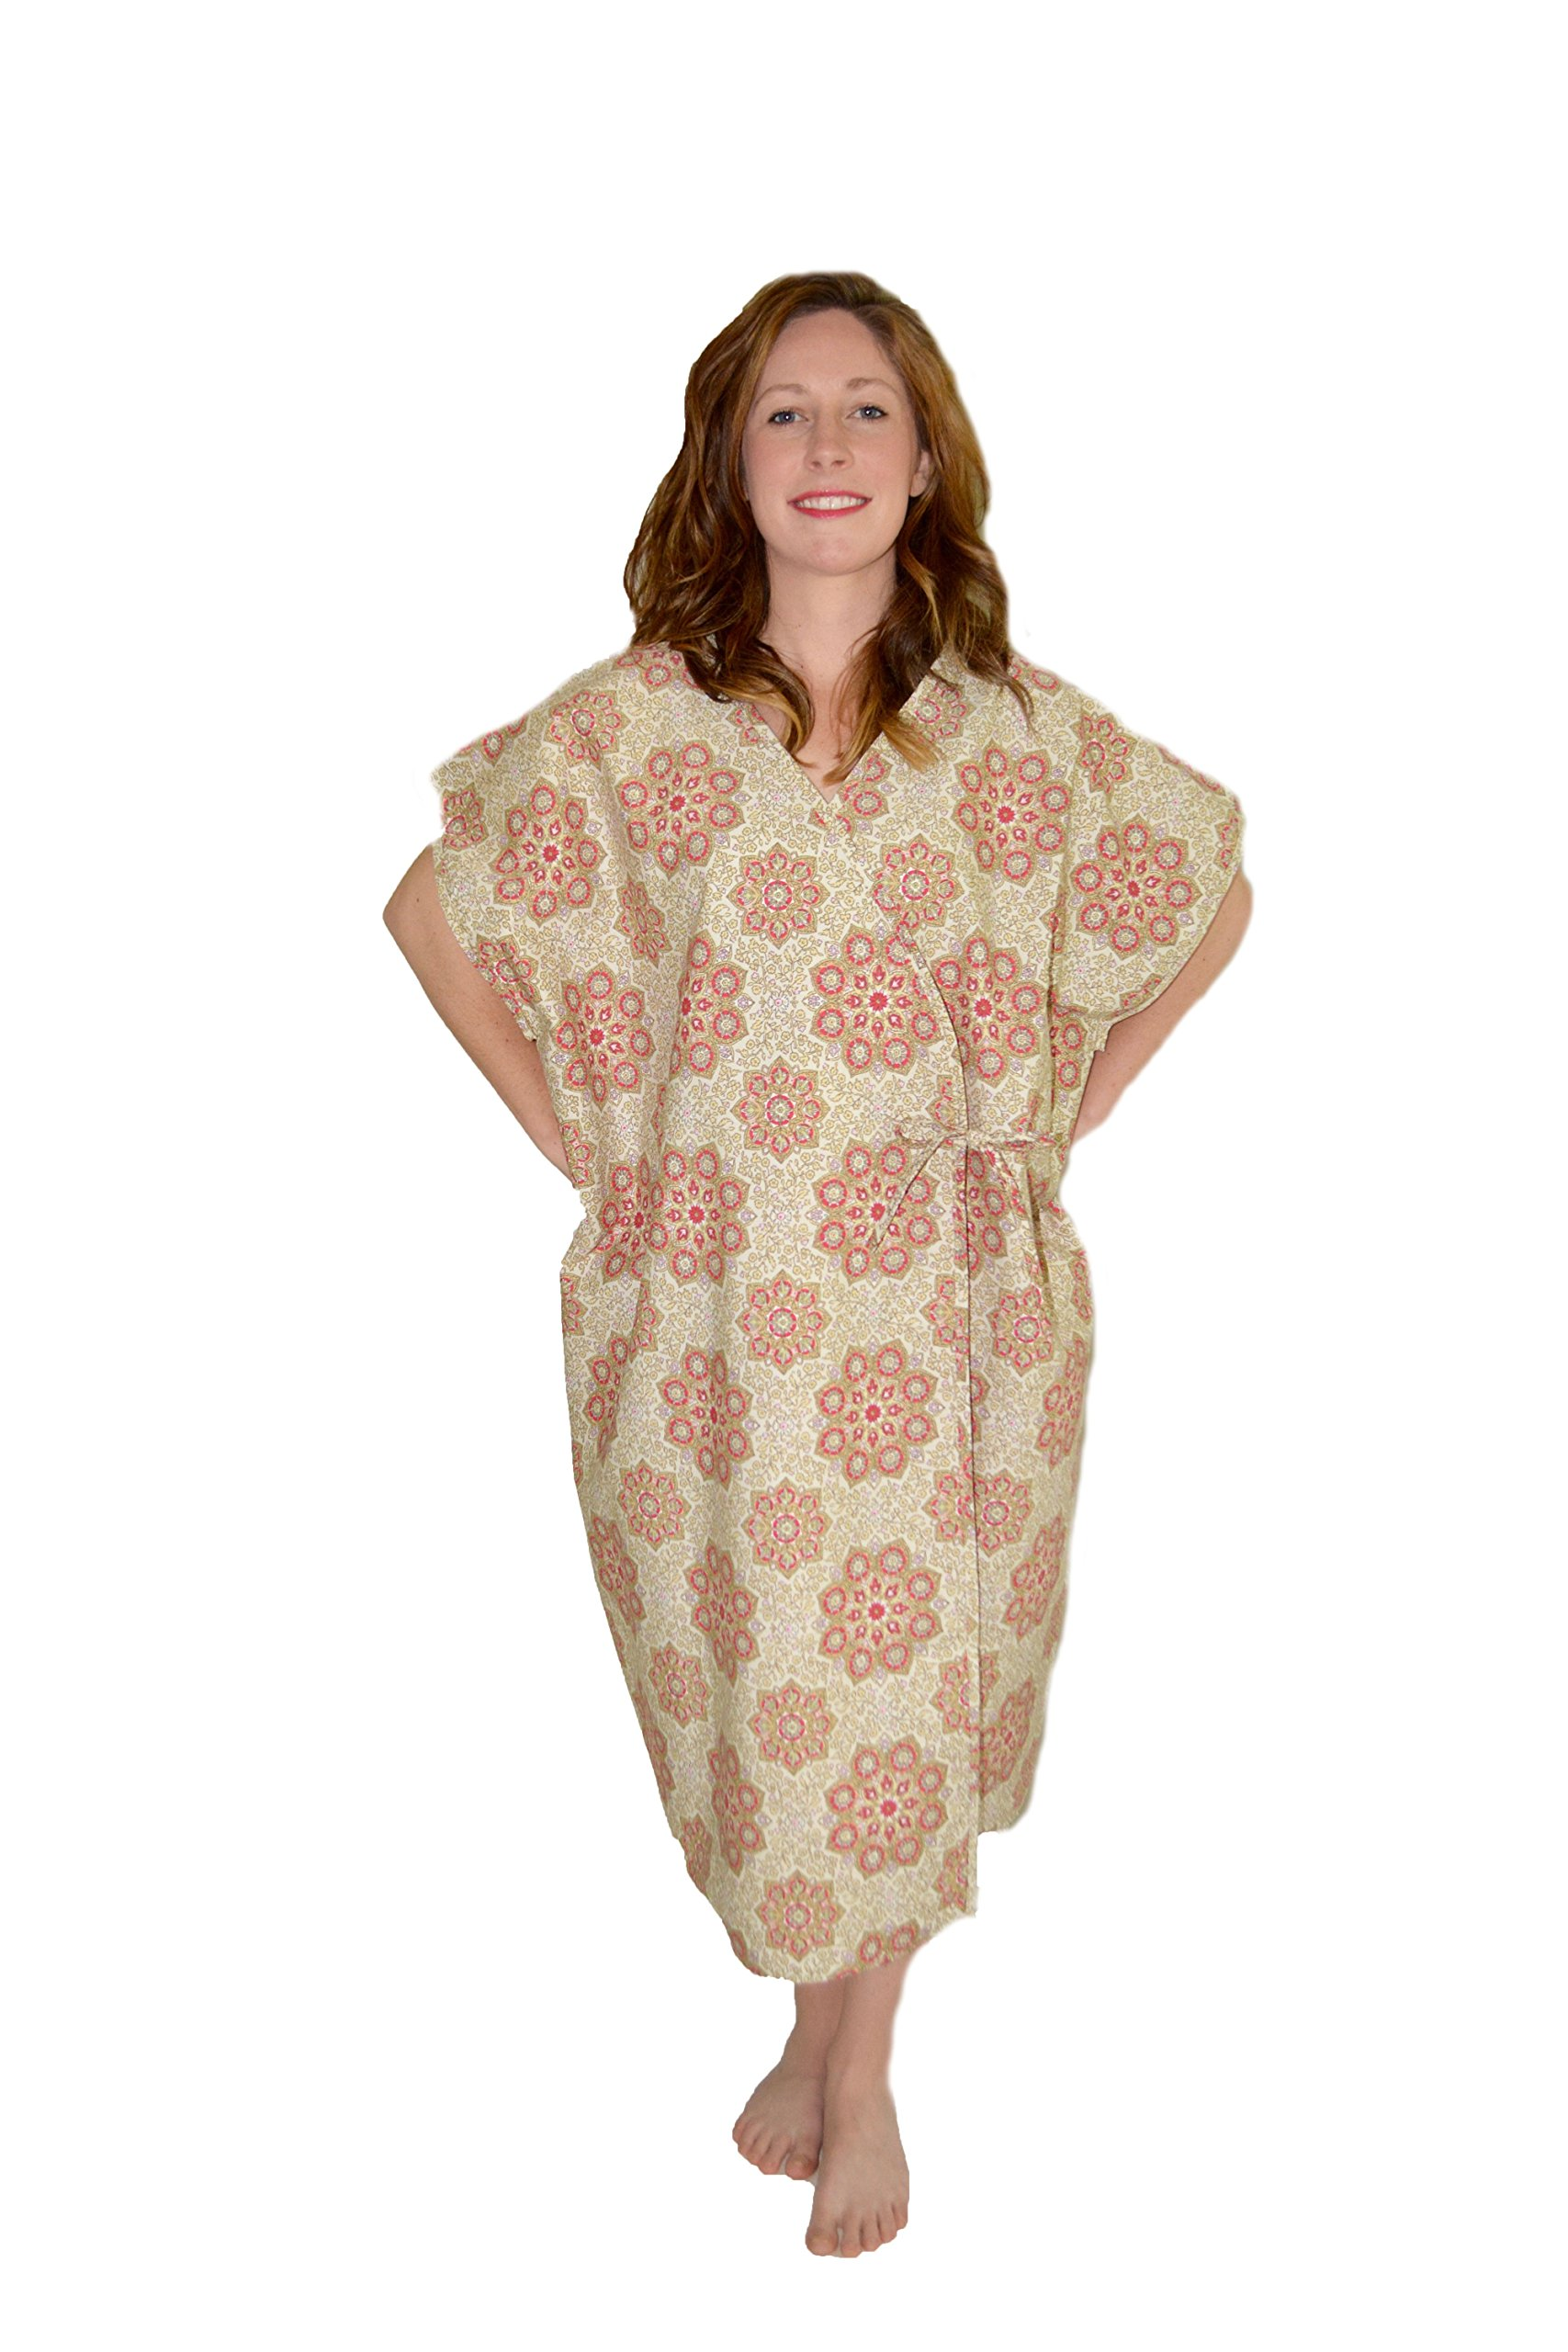 Health Gear - Open Front Kimono Mammography Exam Imaging Gown - Floral Dreams , M-XL (6 piece pack)